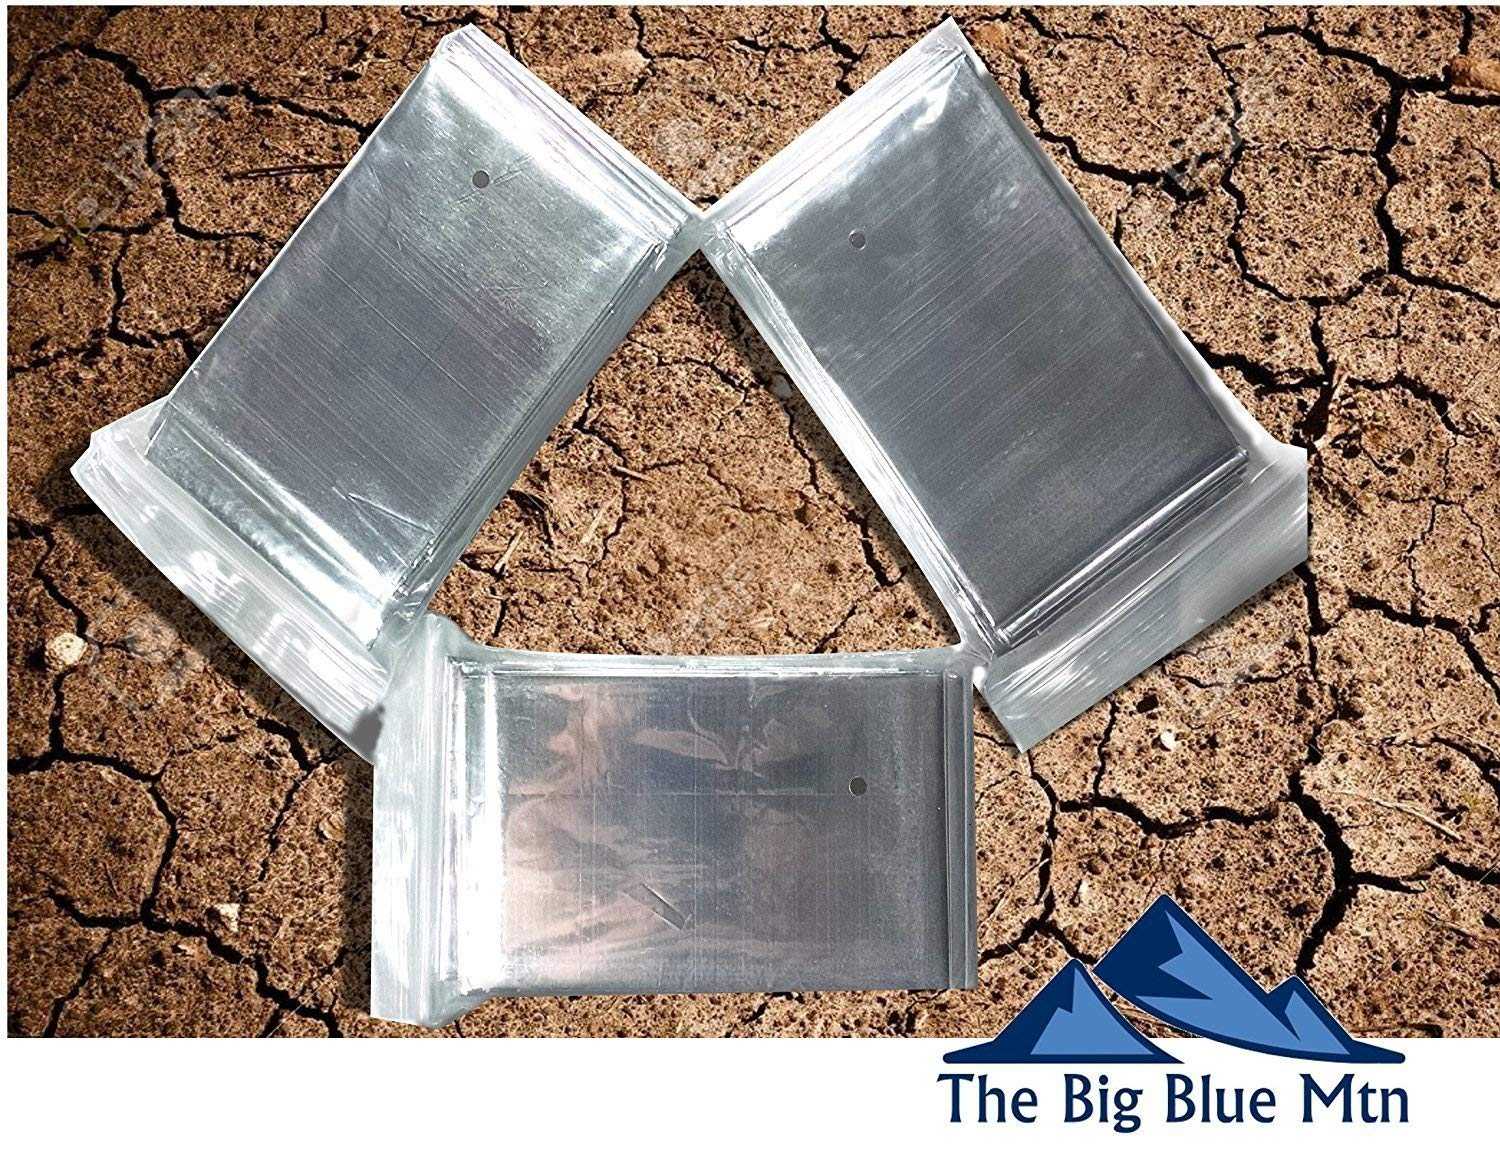 The Big Blue Mtn Emergency Blanket 4 Pack (Silver) + Paracord Survival Bracelet (Navy) Mylar Thermal Foil Space Blankets for Outdoor Camping Hiking Gear by The Big Blue Mtn (Image #3)